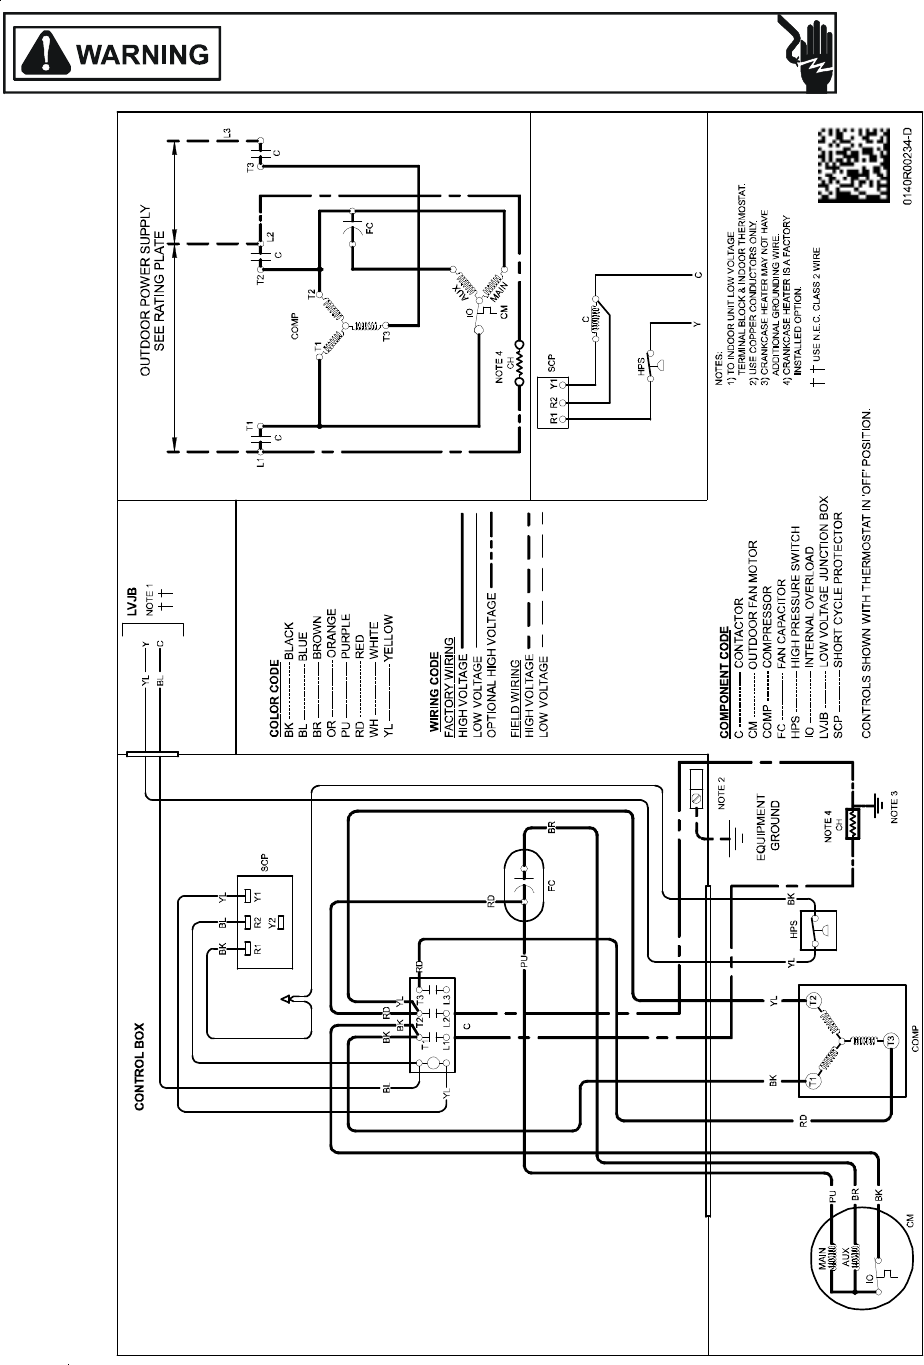 31 Goodman Package Unit Wiring Diagram